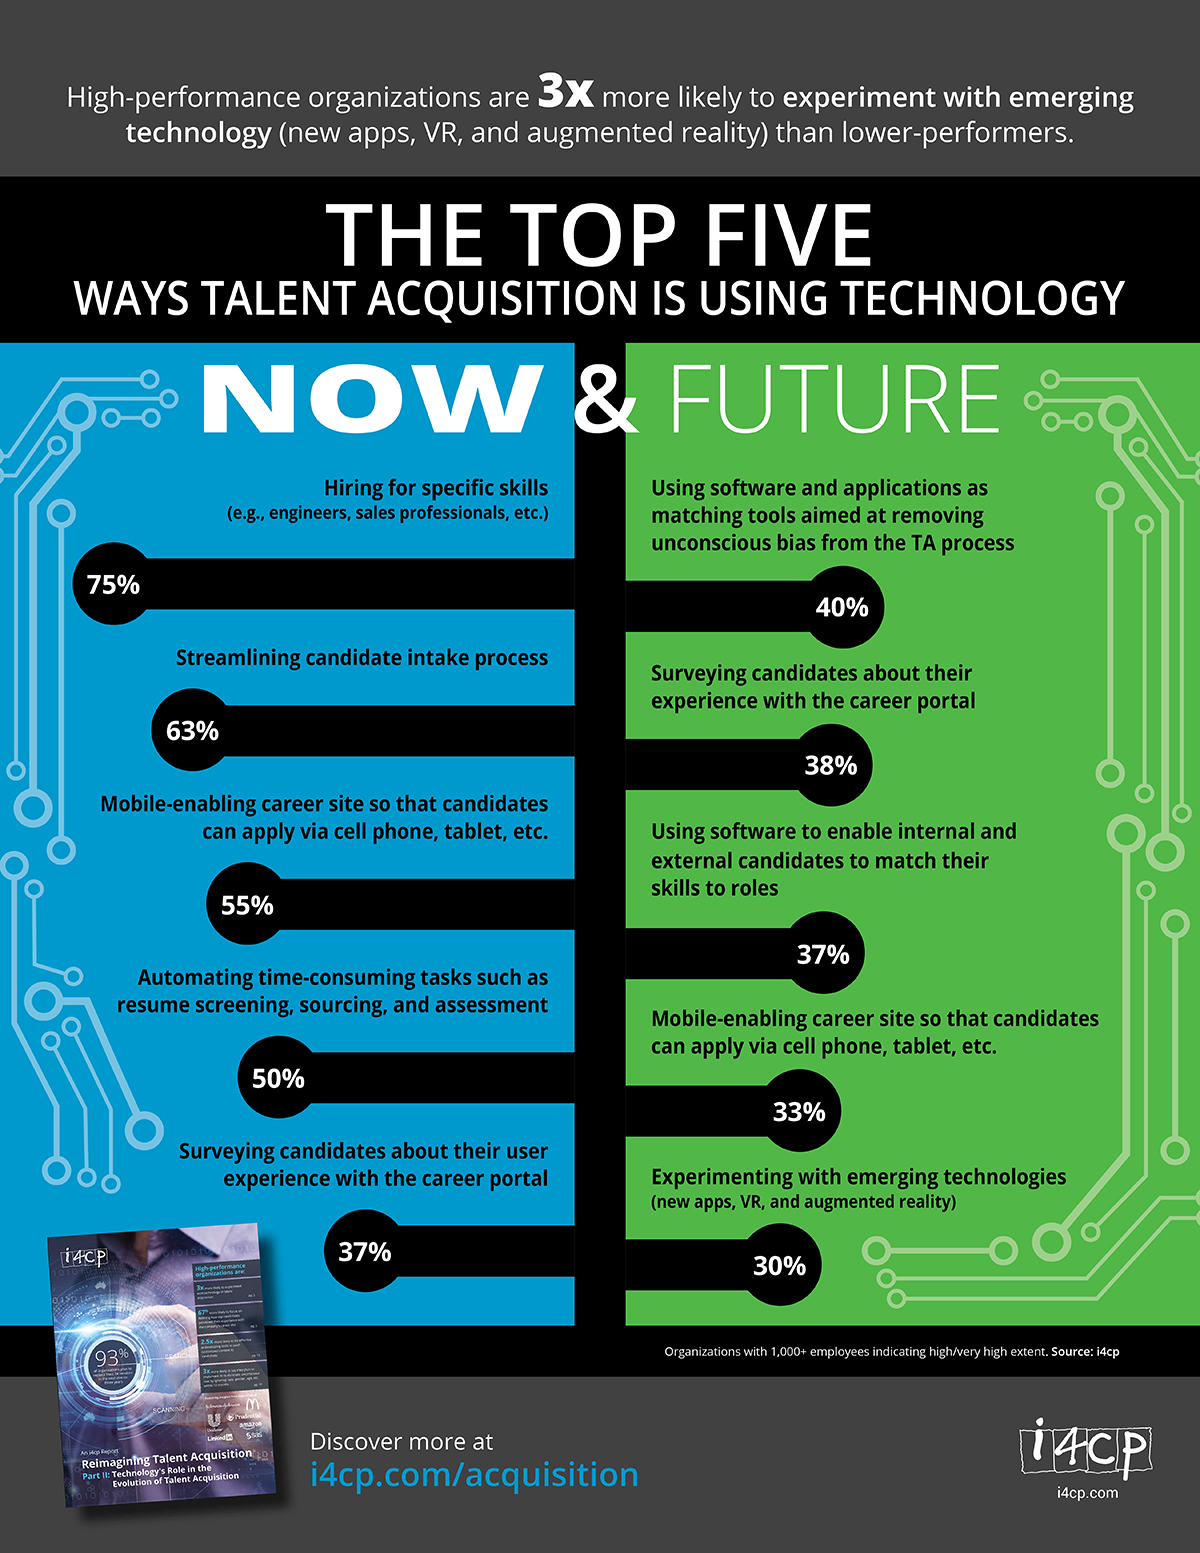 Top 5 Ways Talent Acquisition Uses Technology